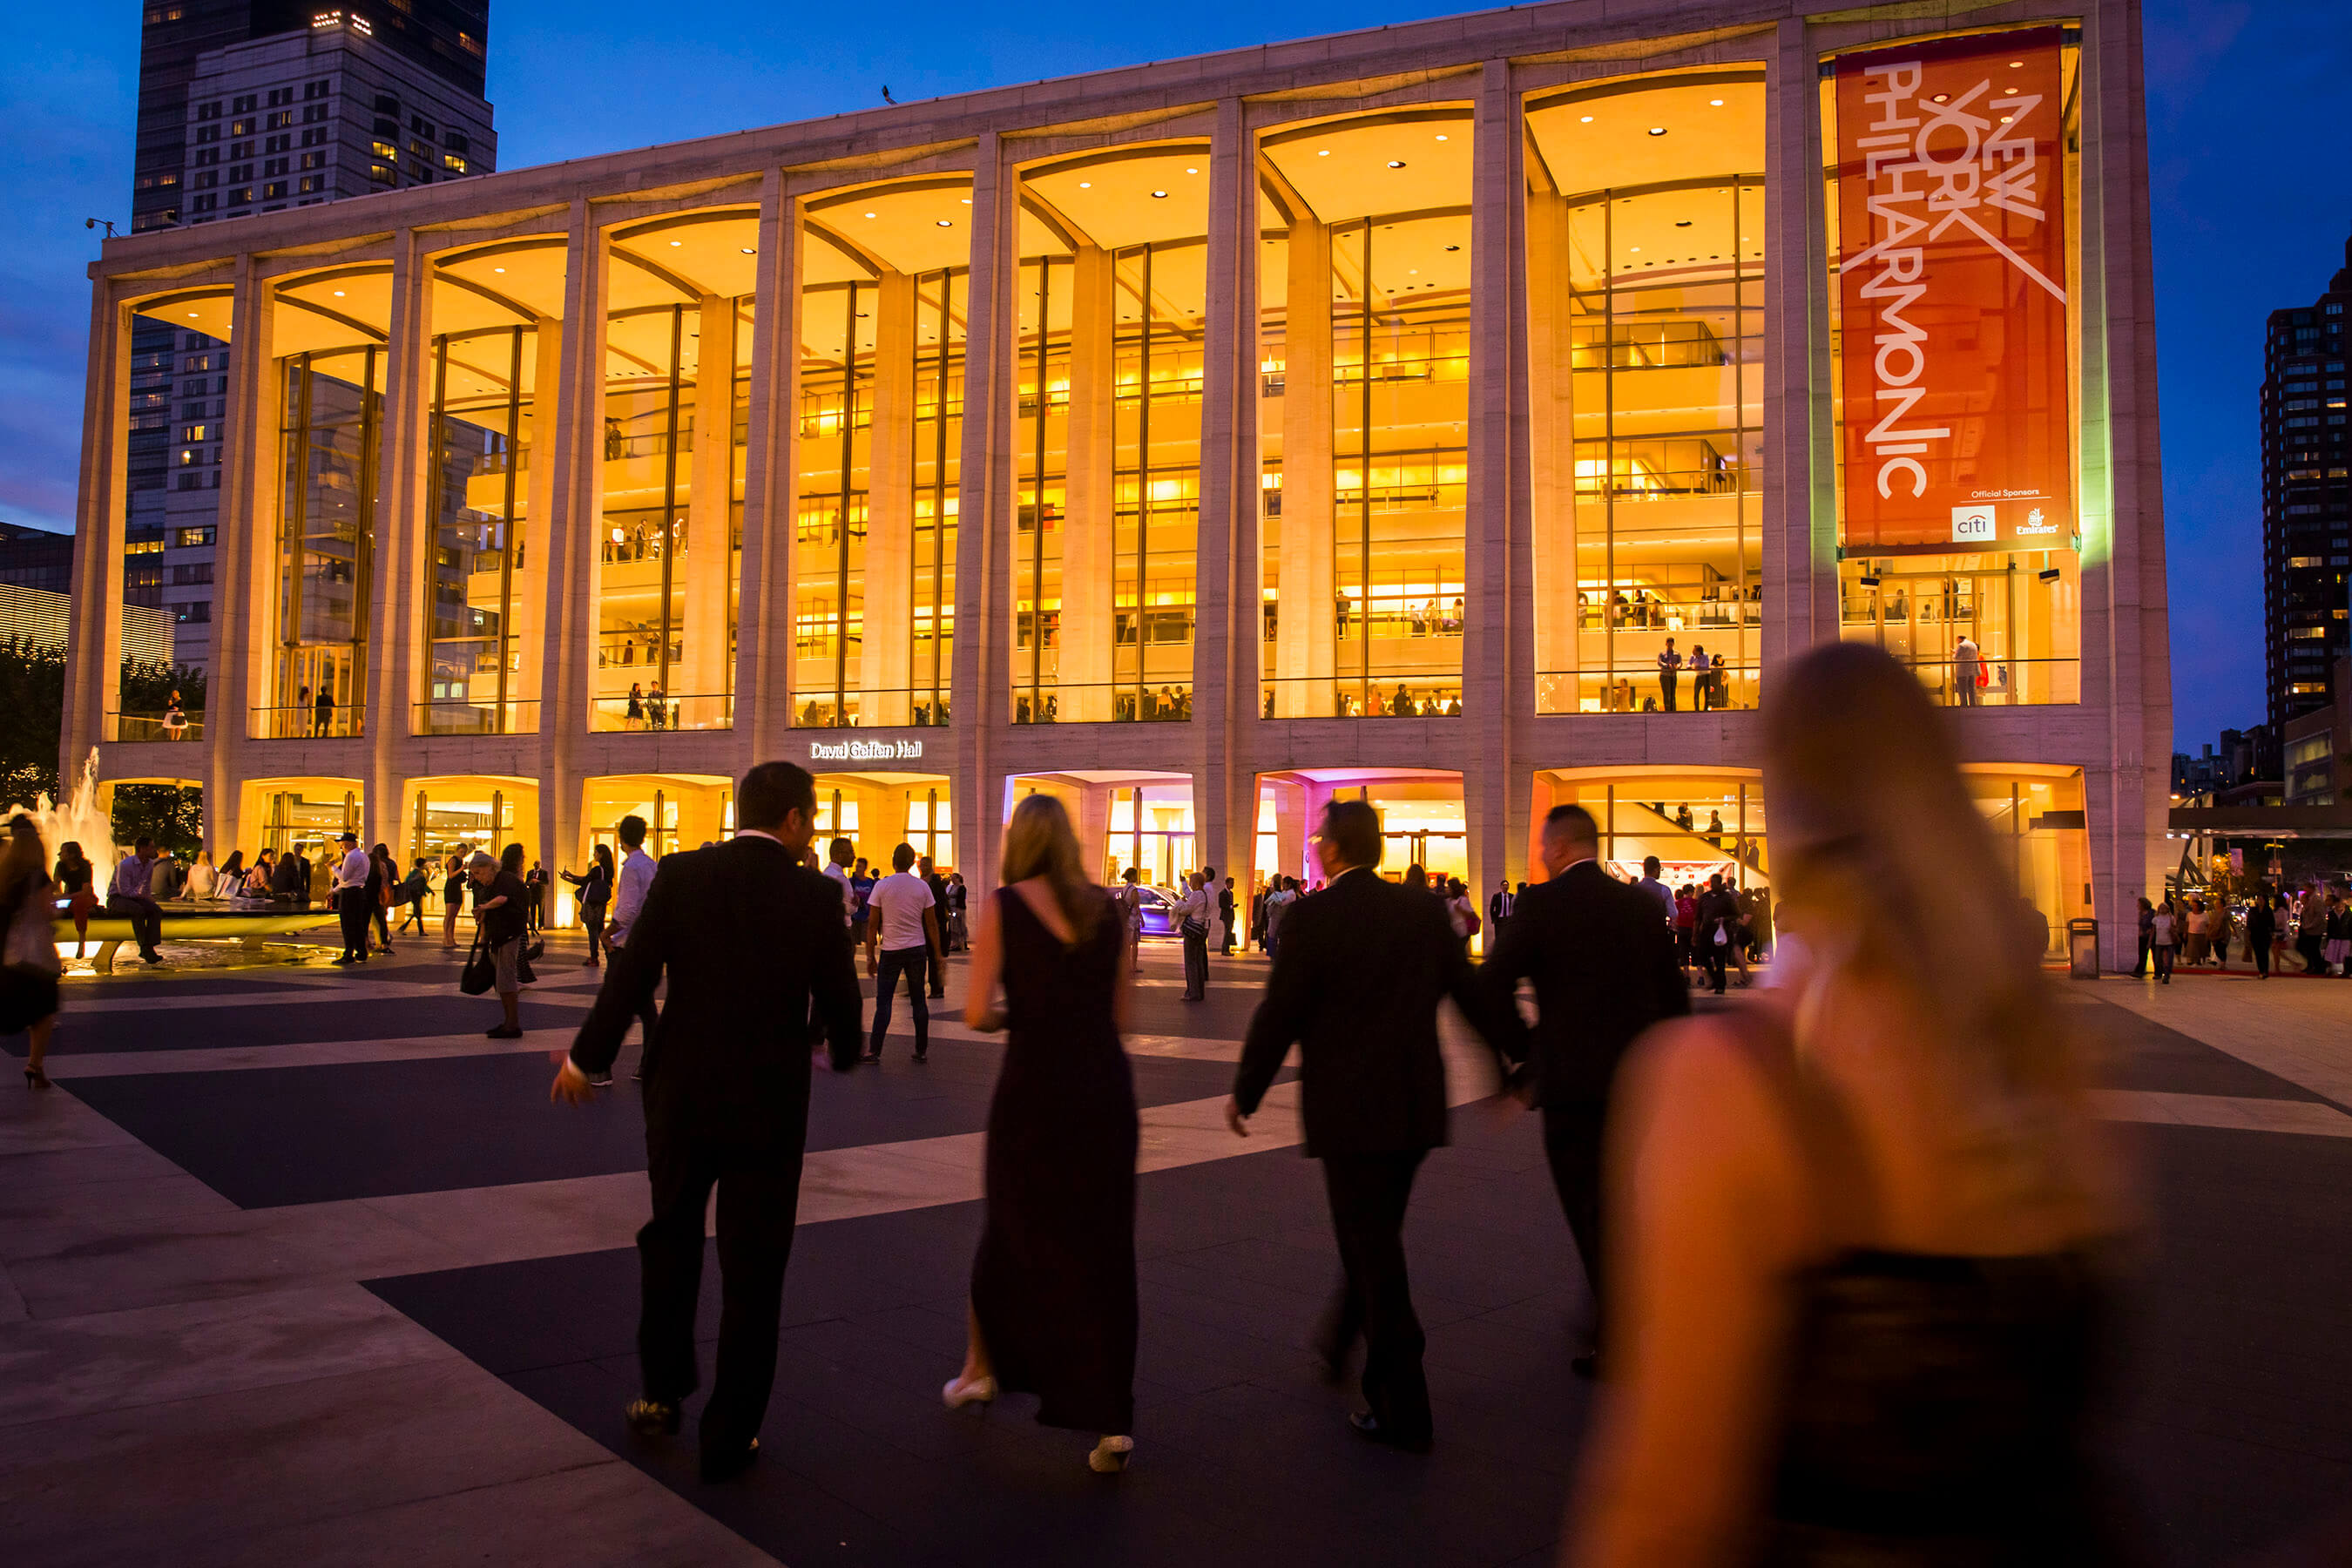 NYPhil David Geffen Hall